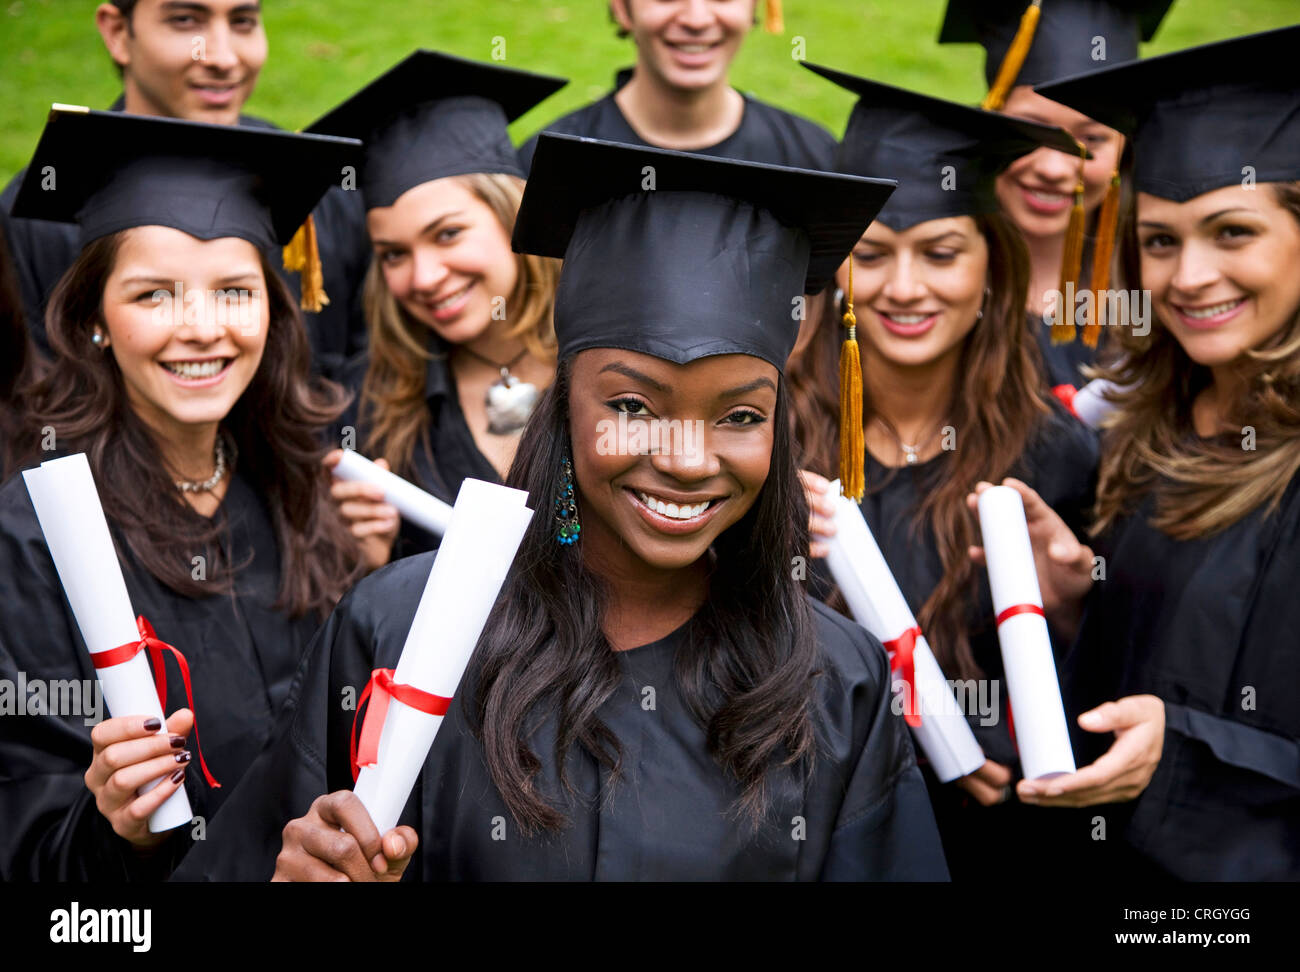 group of female graduates gown mortarboard and diploma stock  group of female graduates gown mortarboard and diploma